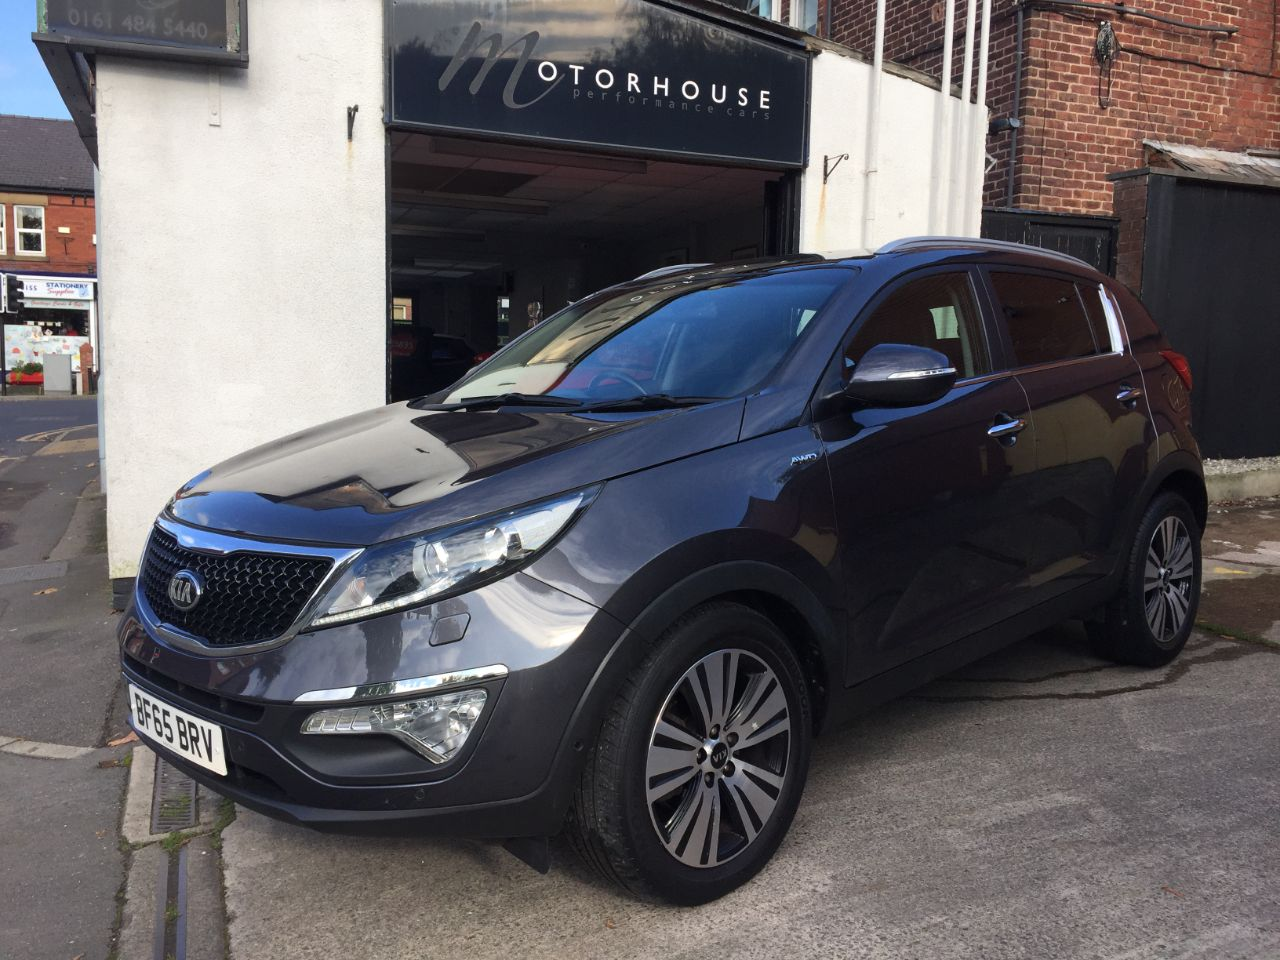 Kia Sportage 2.0 CRDi KX-4 5dr Auto ALL WHEEL DRIVE Estate Diesel Silver at Motorhouse Cheshire Stockport